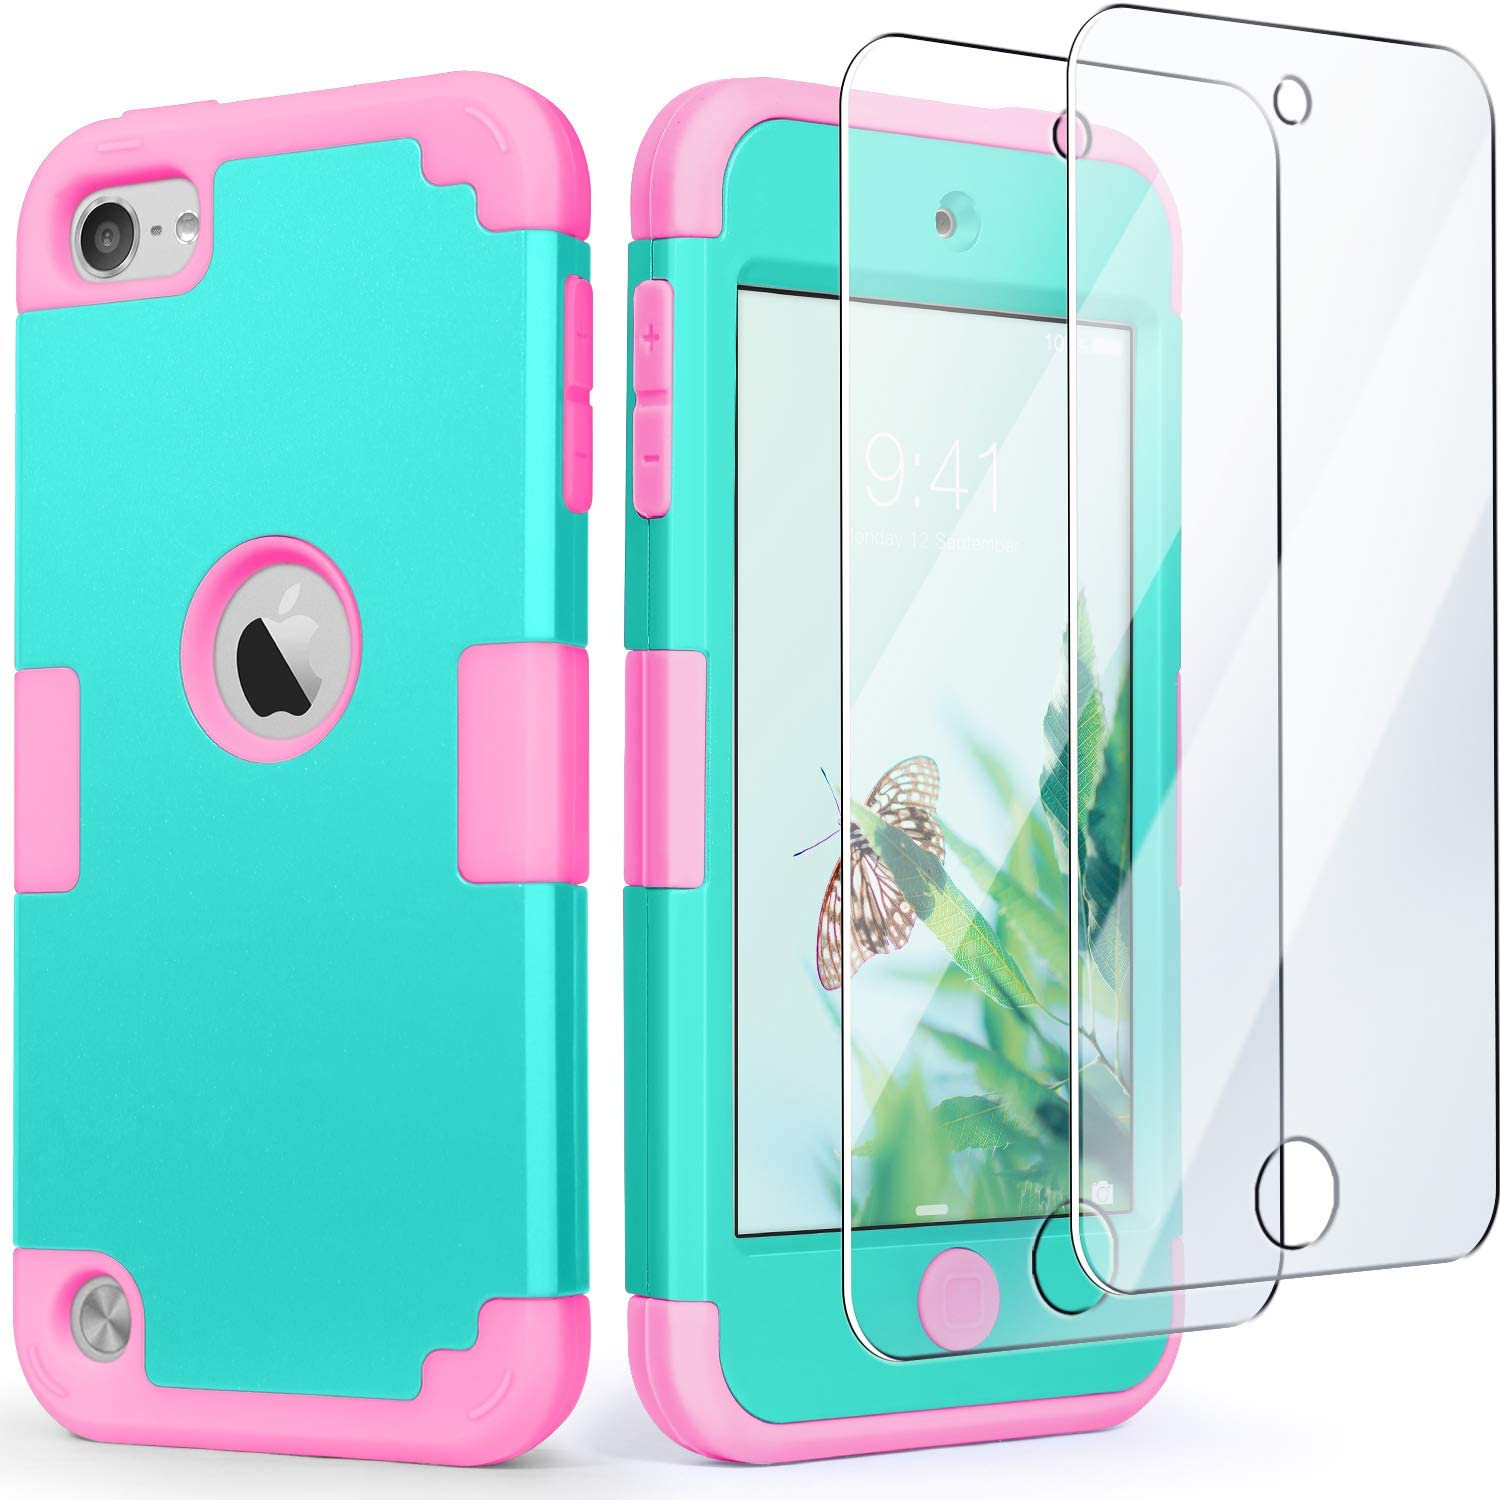 iPod Touch 7 Case with 2 Screen Protectors, iPod 6 & 5 Case, IDweel 3 in 1 Hard PC Case + Silicone Shockproof for Kids Heavy Duty Hard Case Cover for 2019 iPod Touch 7th/6th/5th Gen, Mint+Pink